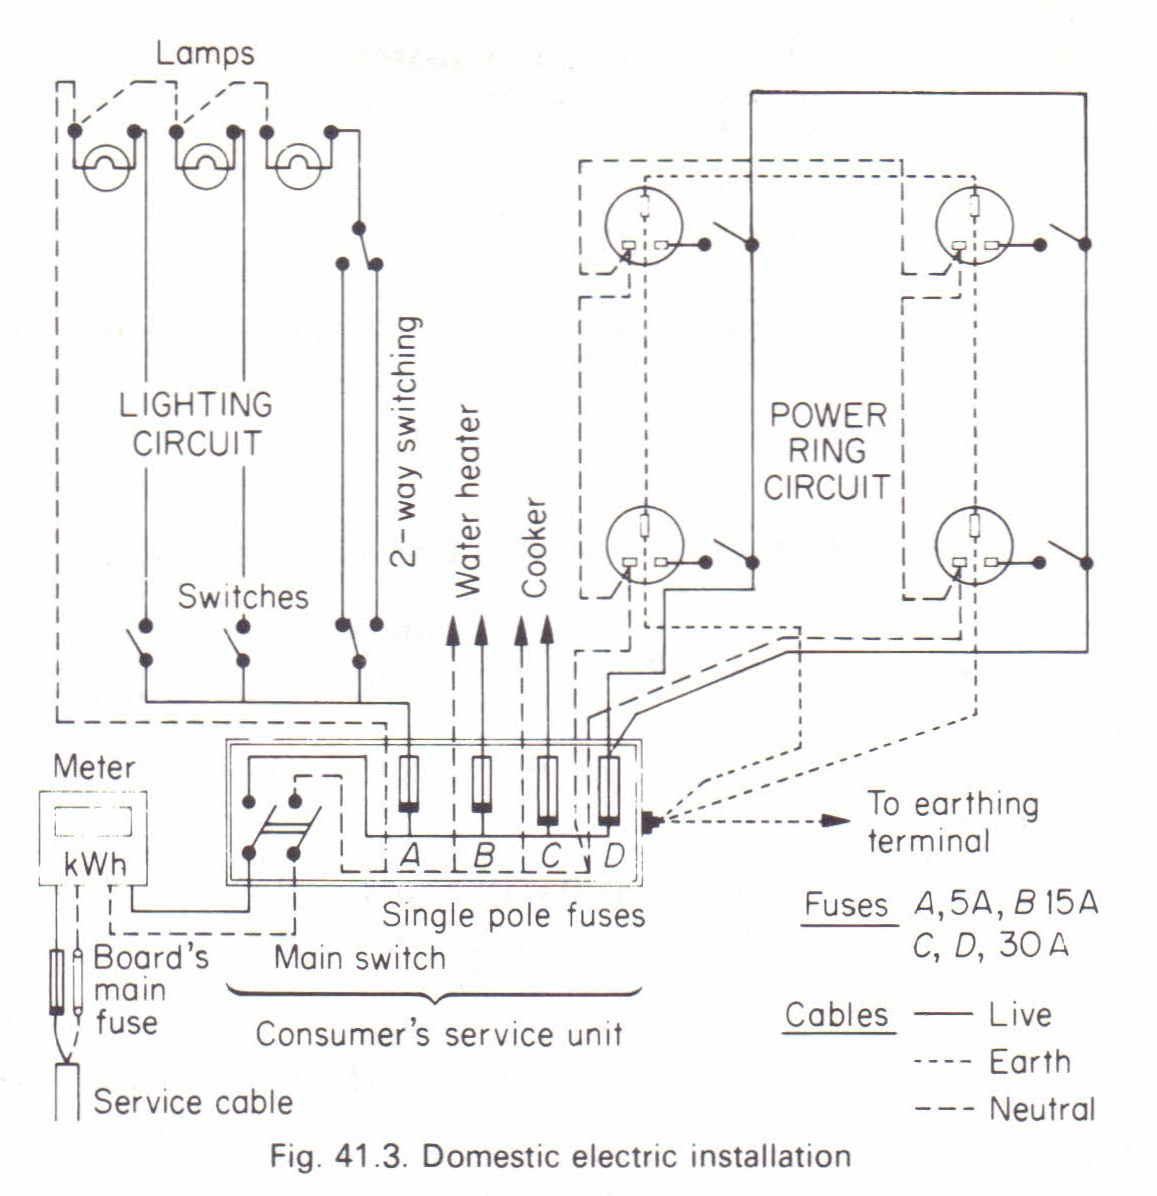 Electrical Installation Guide For Home - efcaviation.com